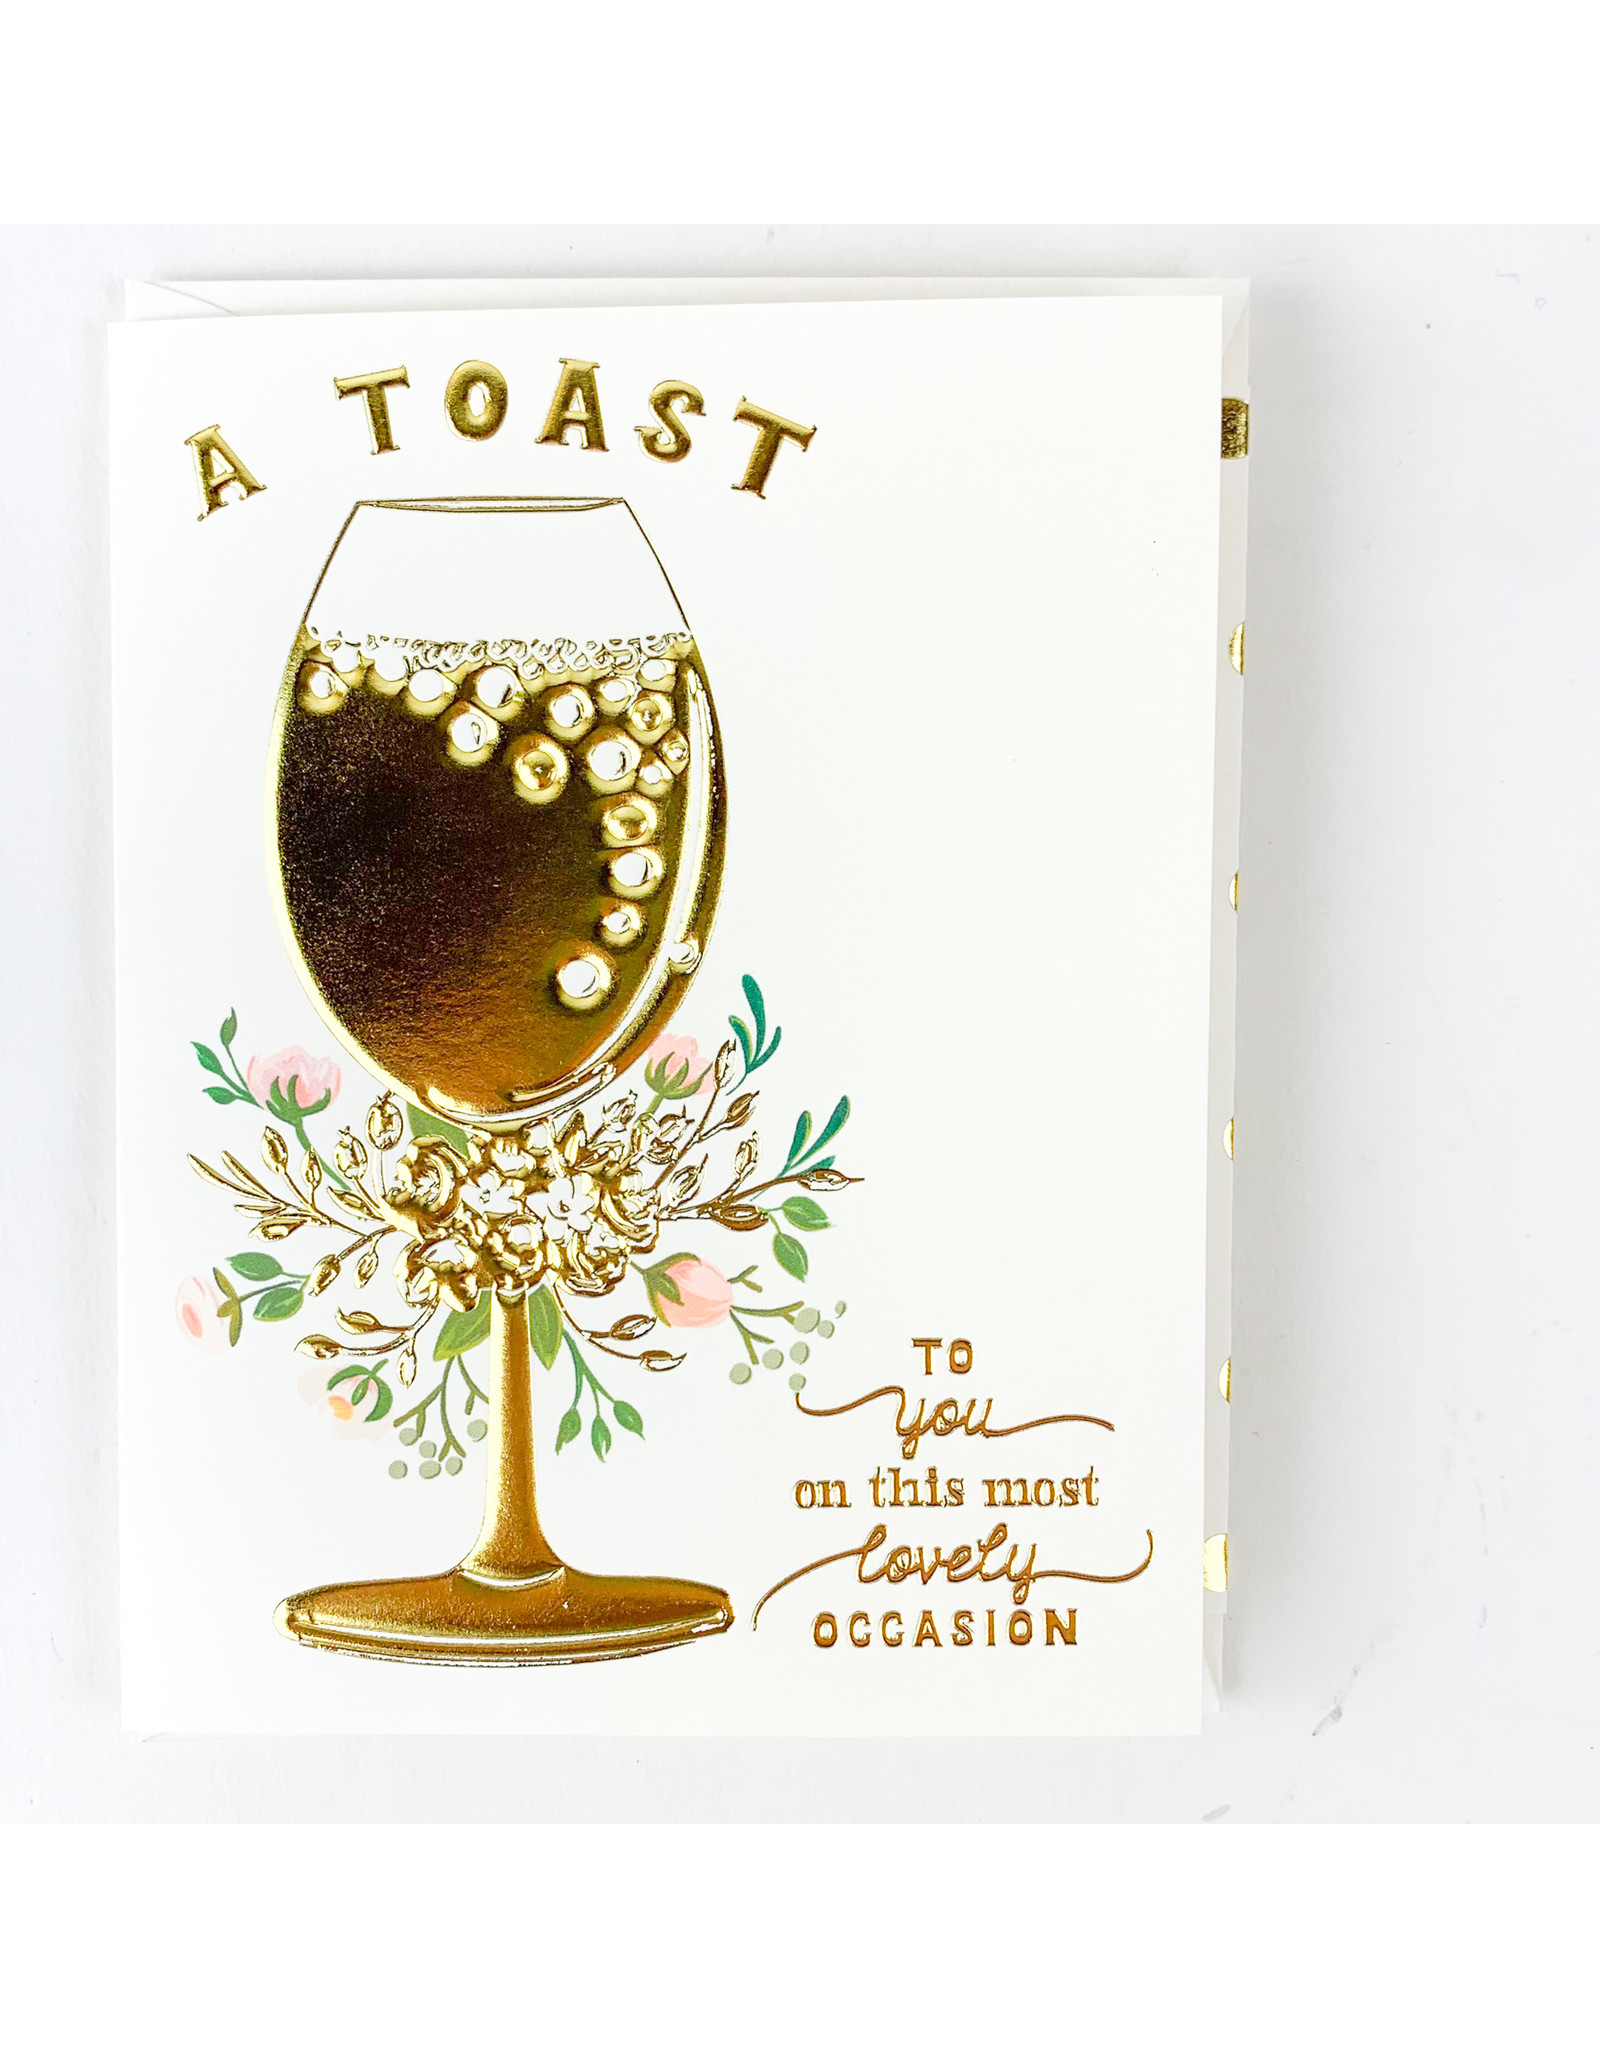 The First Snow A Toast to You